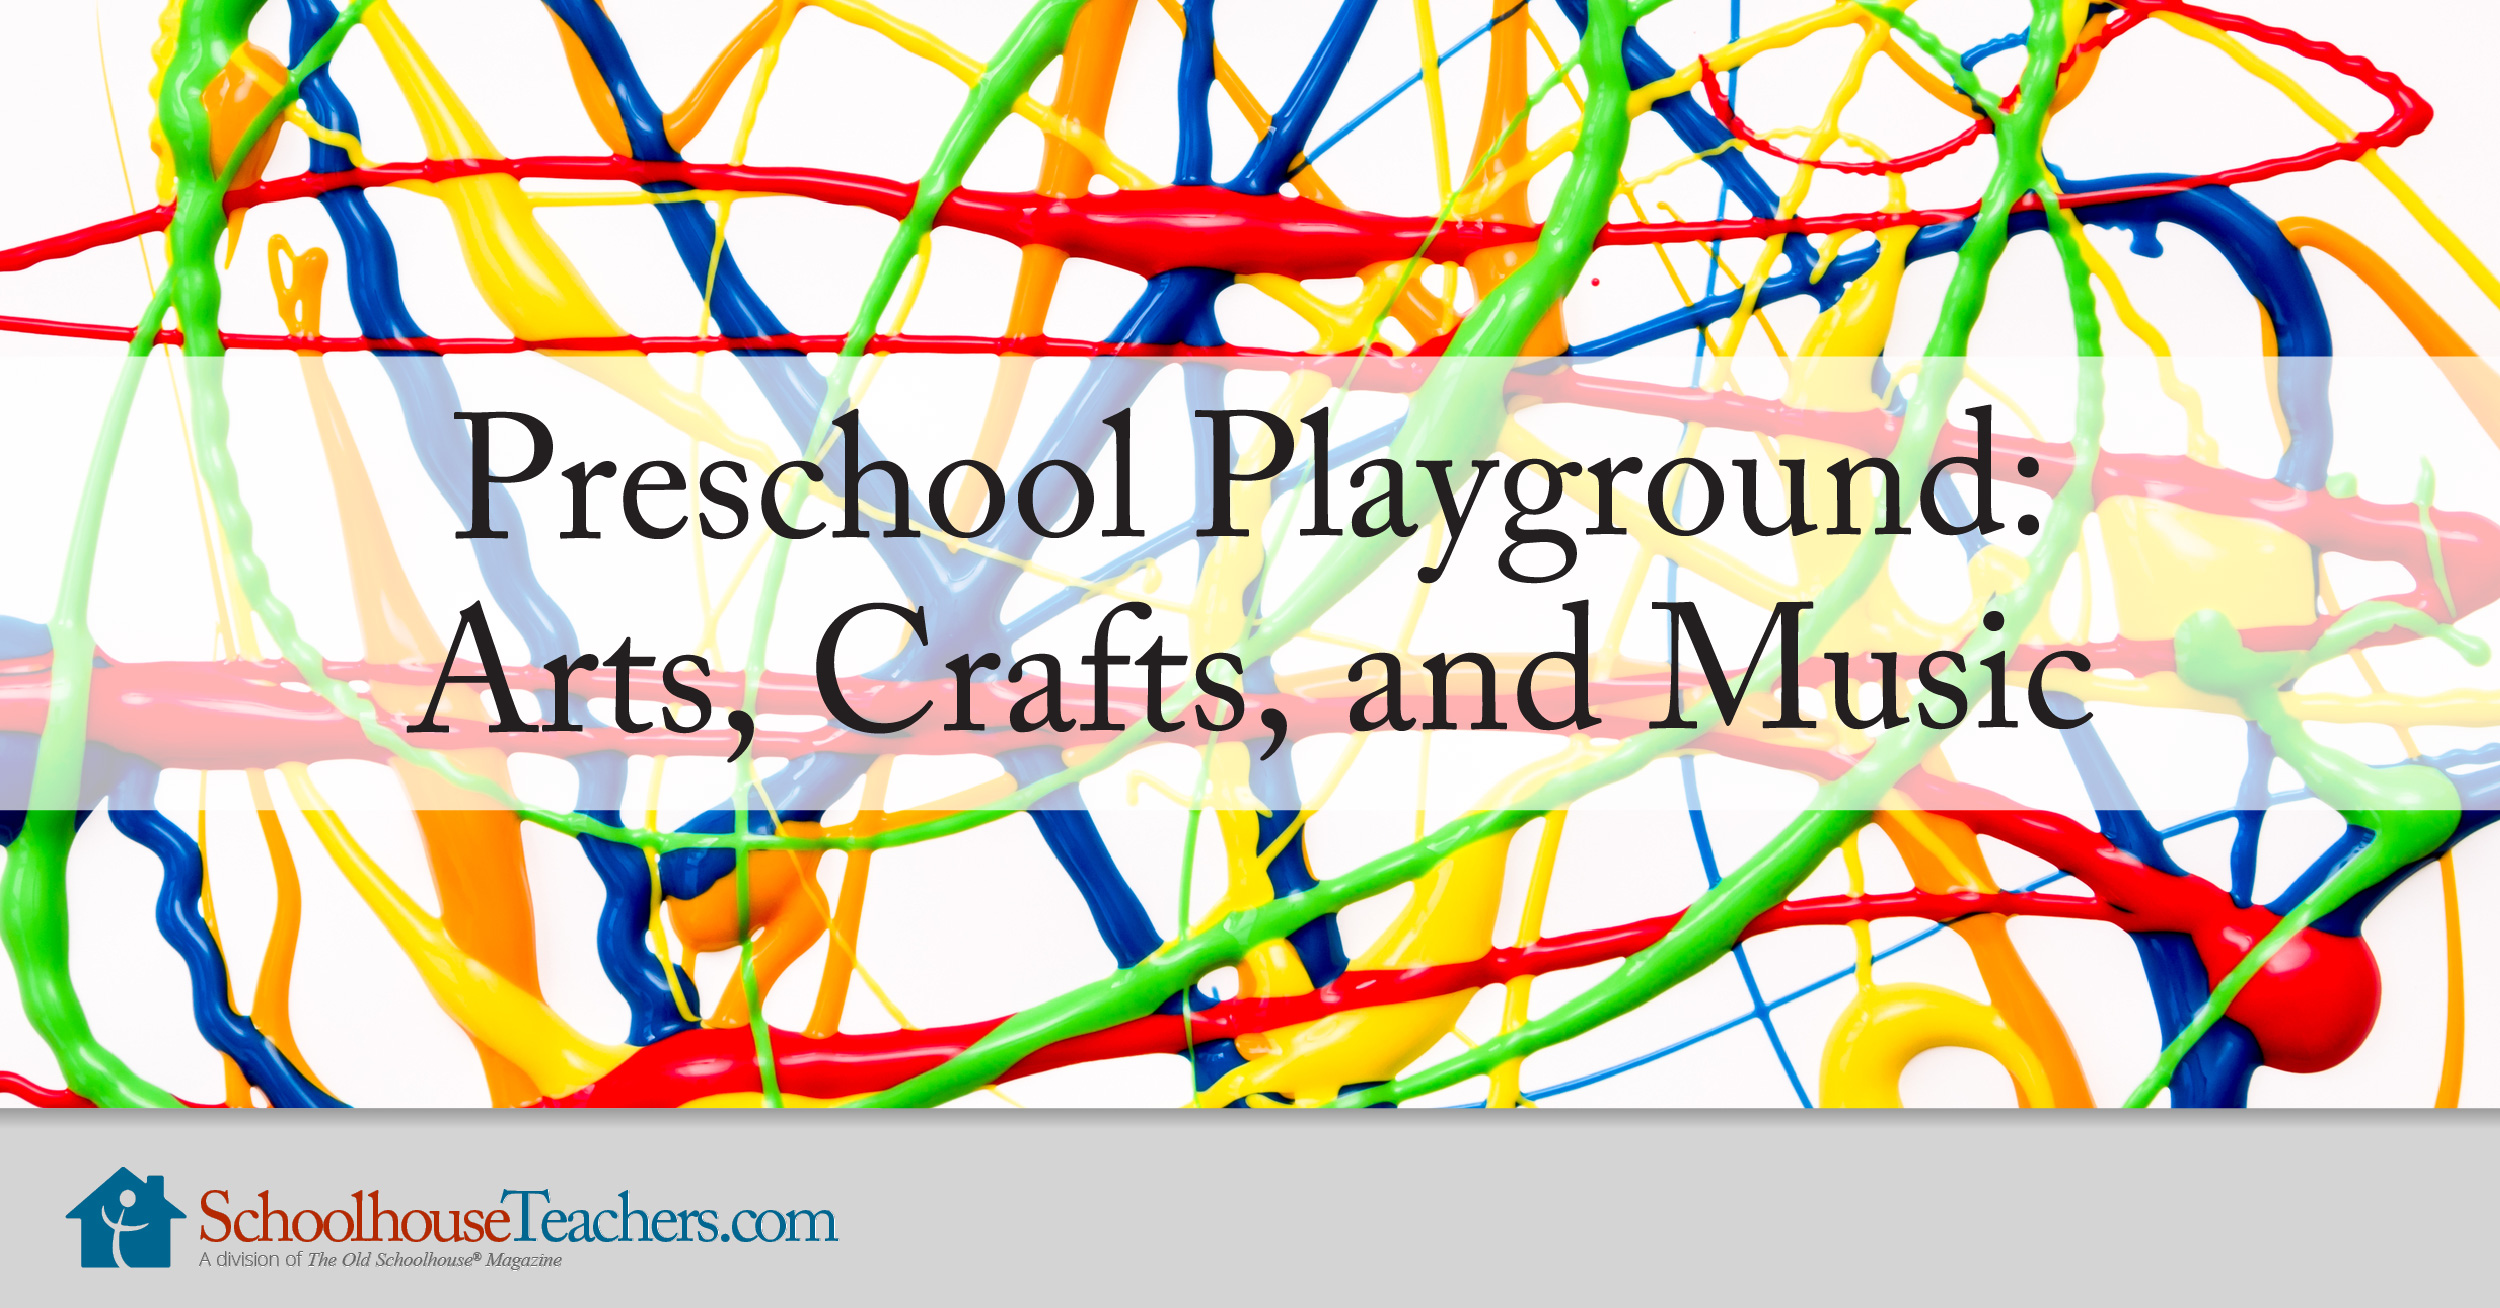 Preschool Art and Crafts Courses